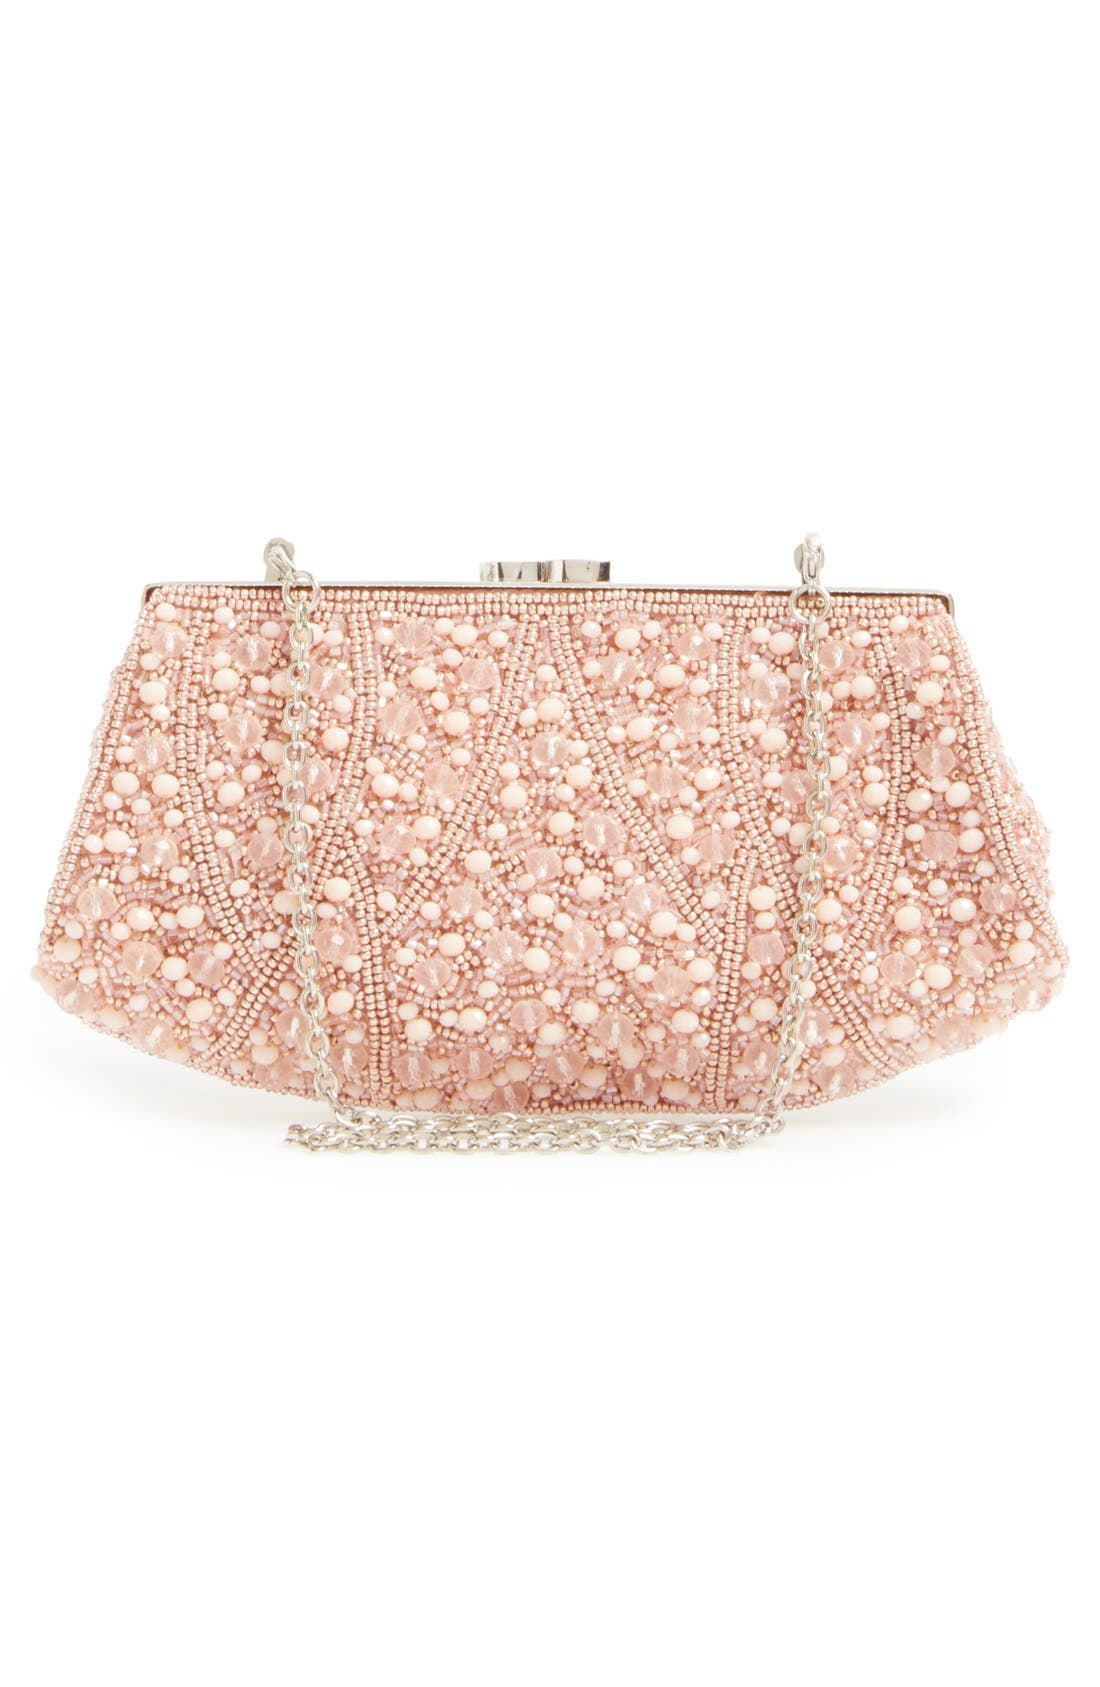 Alternate Image 3  - Glint 'Rivoli' Beaded Clutch